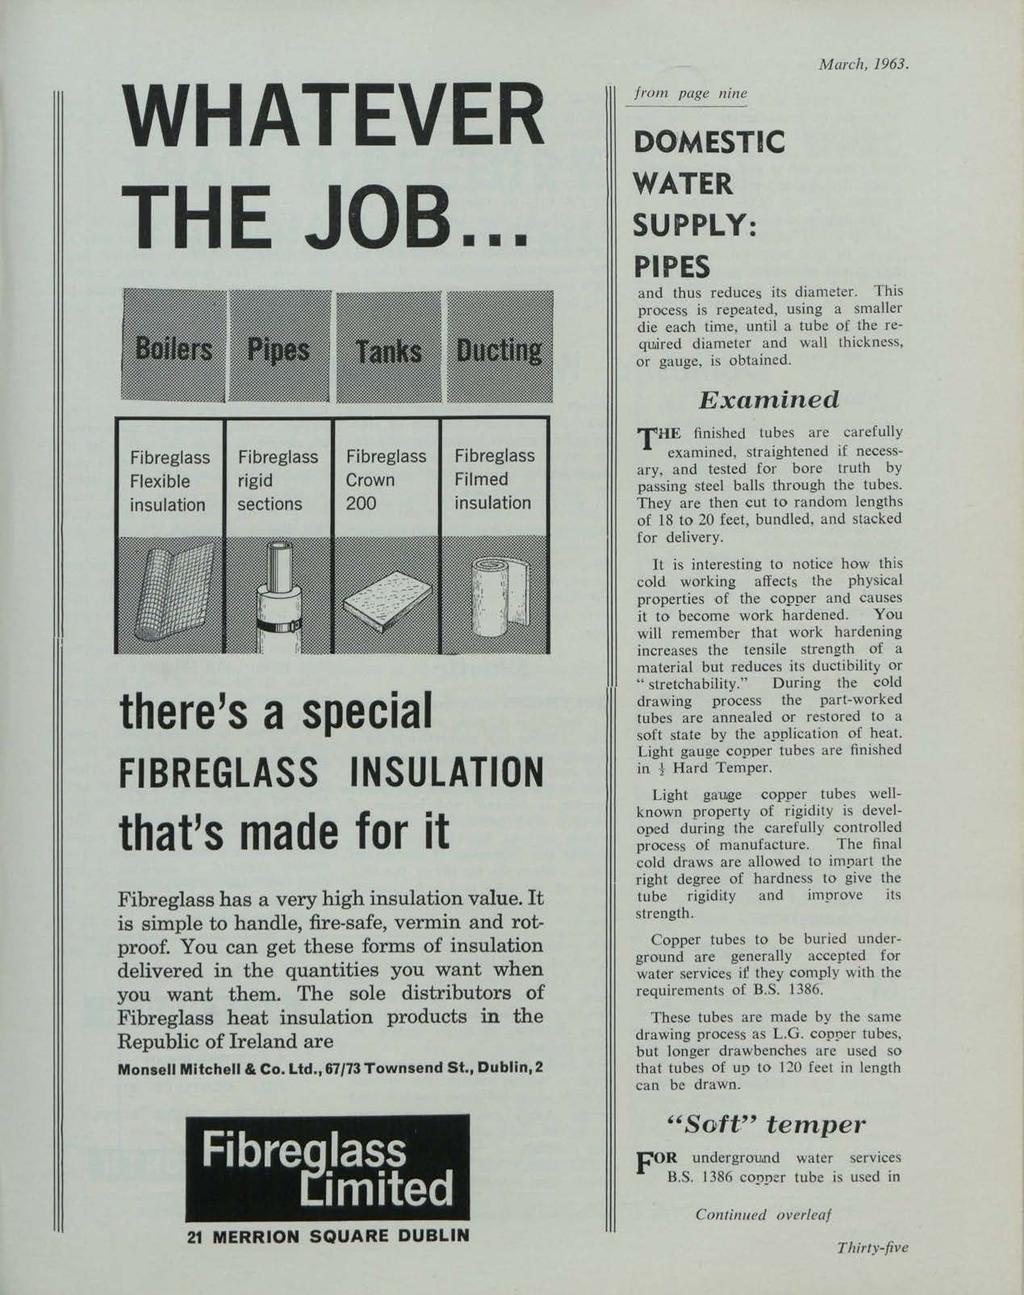 et al.: The Irish Plumber and Heating Contractor, March 1963 (complete is WHATEVER THE JOB... from page nine DO,MESTIC WATER SUPPLY: PIPES March, 1963. and thus reduces its diameter.